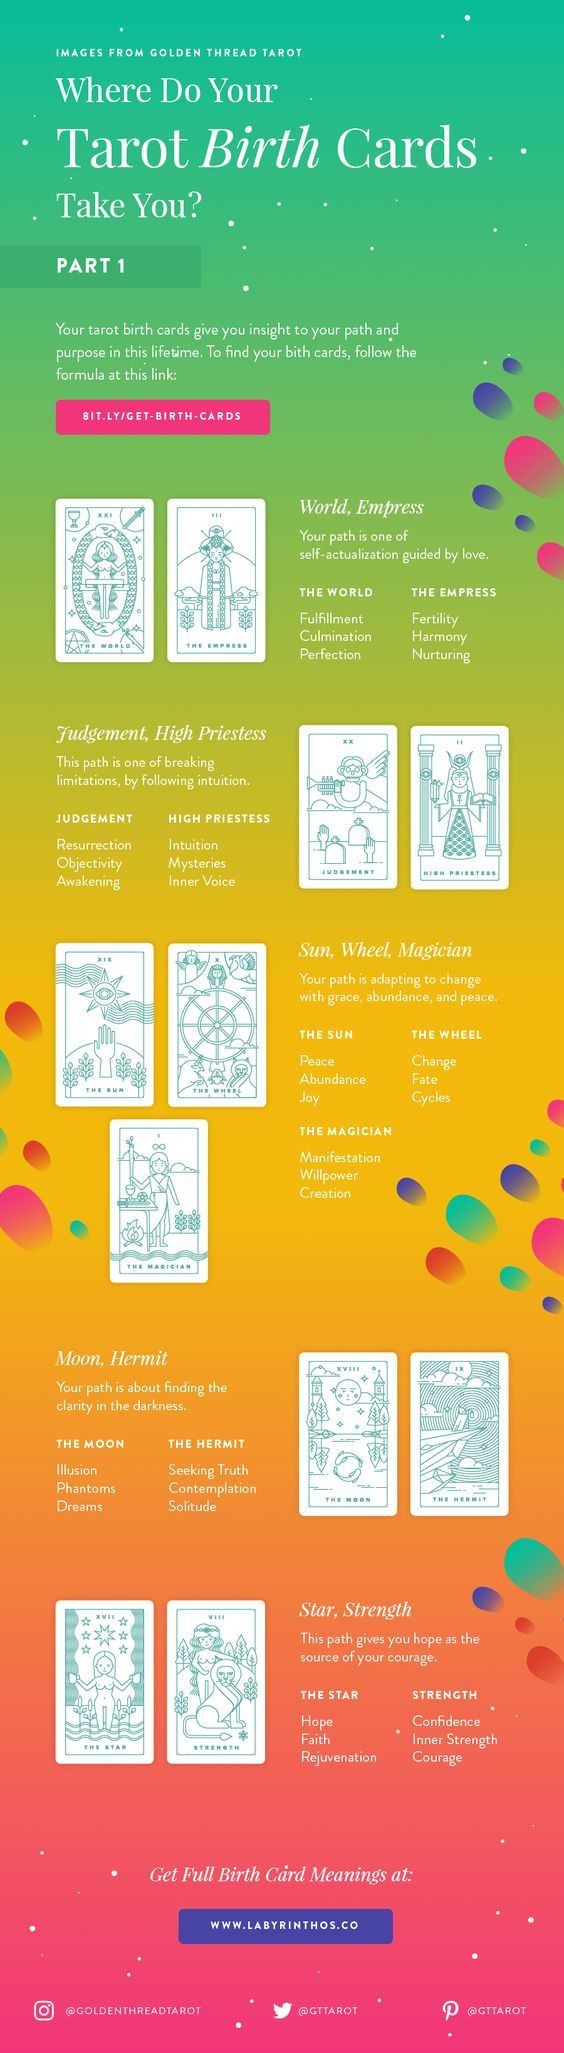 Easy infographic guide on How to Calculate Your Tarot Birth Card, Plus Short Birth Card Meanings